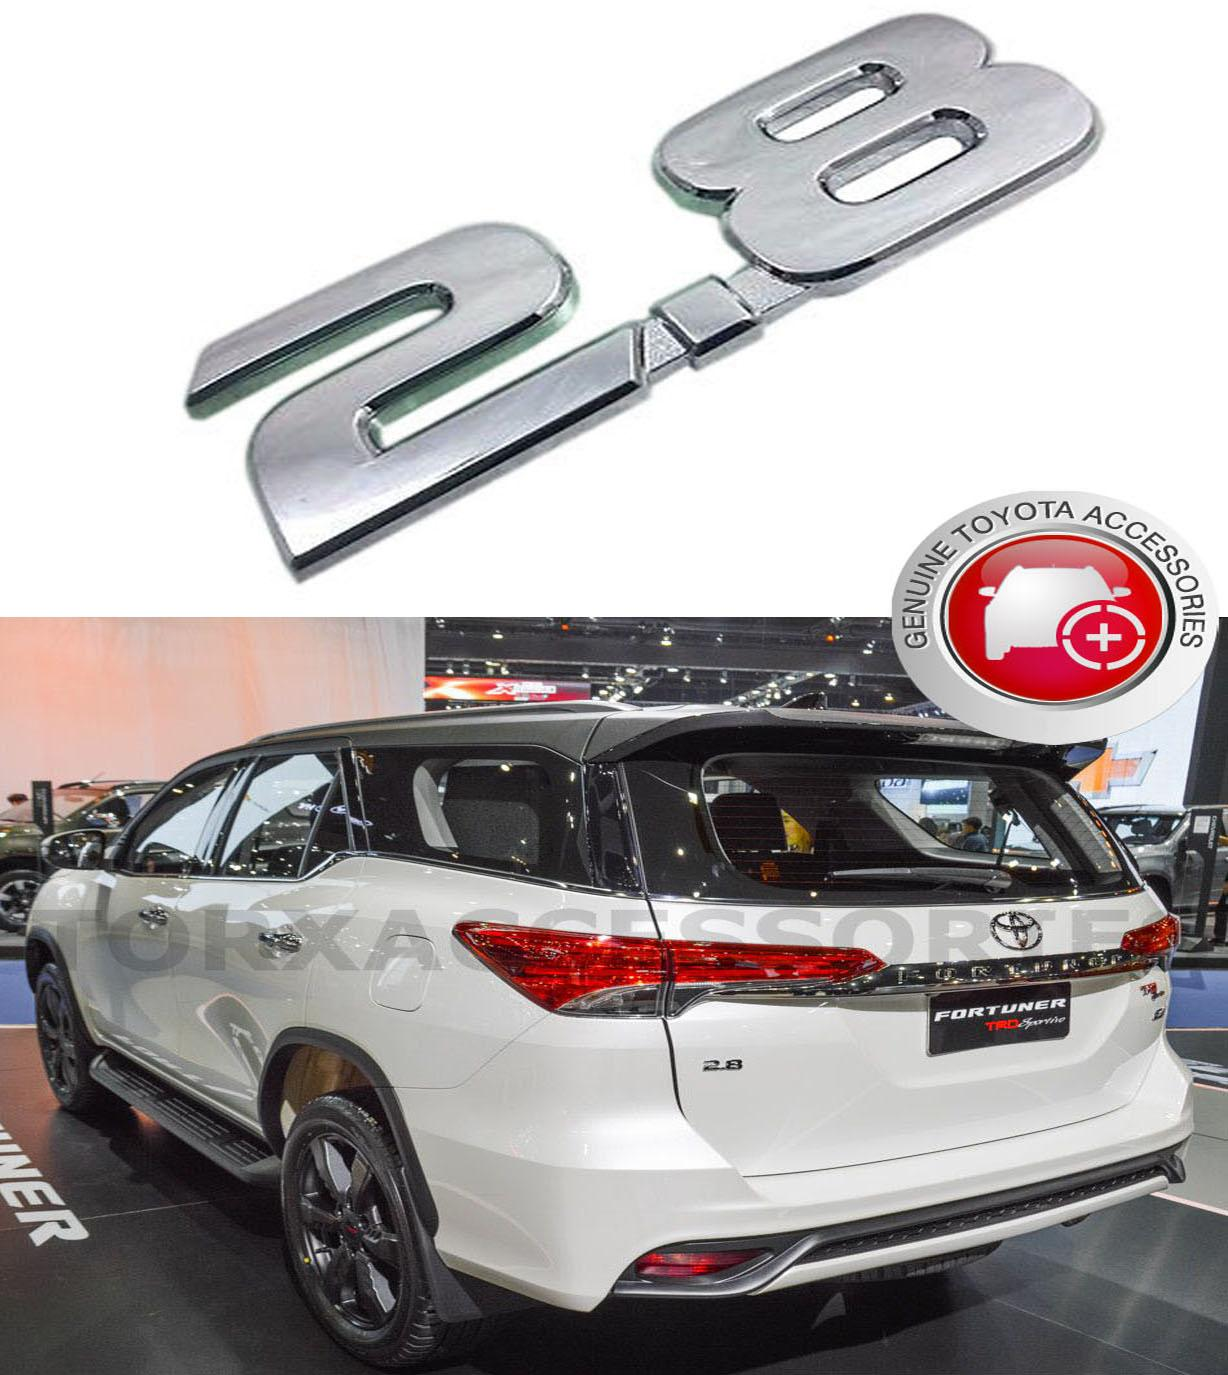 Genuine 2.8 Emblem For Toyota Fortuner 4x4 2016 - 2019 By Torxaccessories.